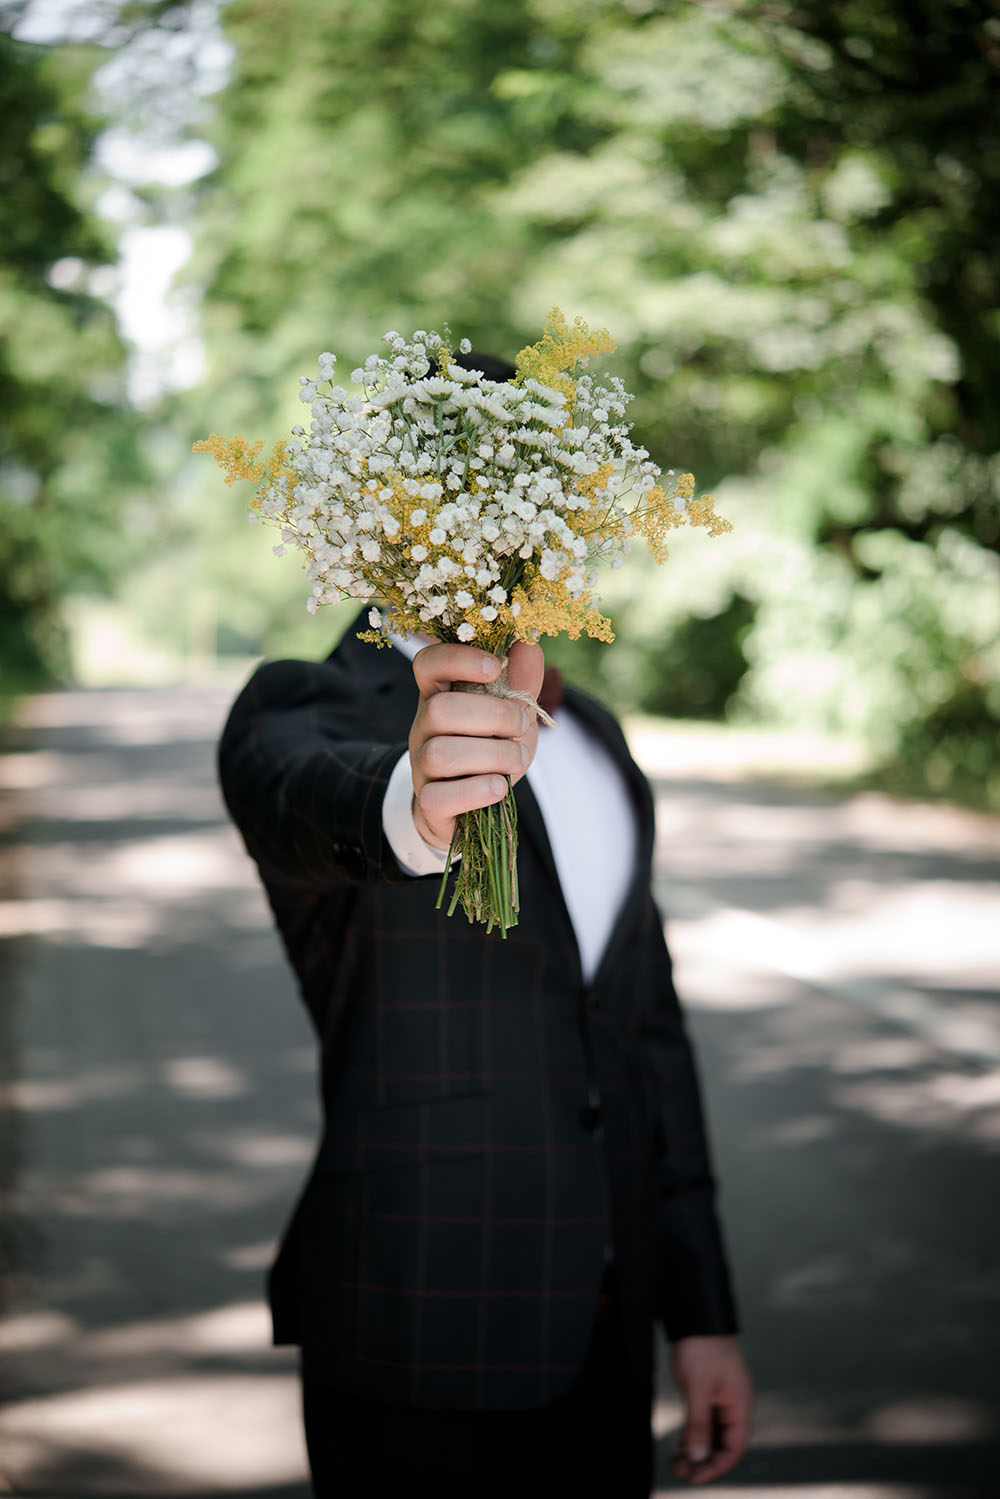 10 Common Wedding Superstitions